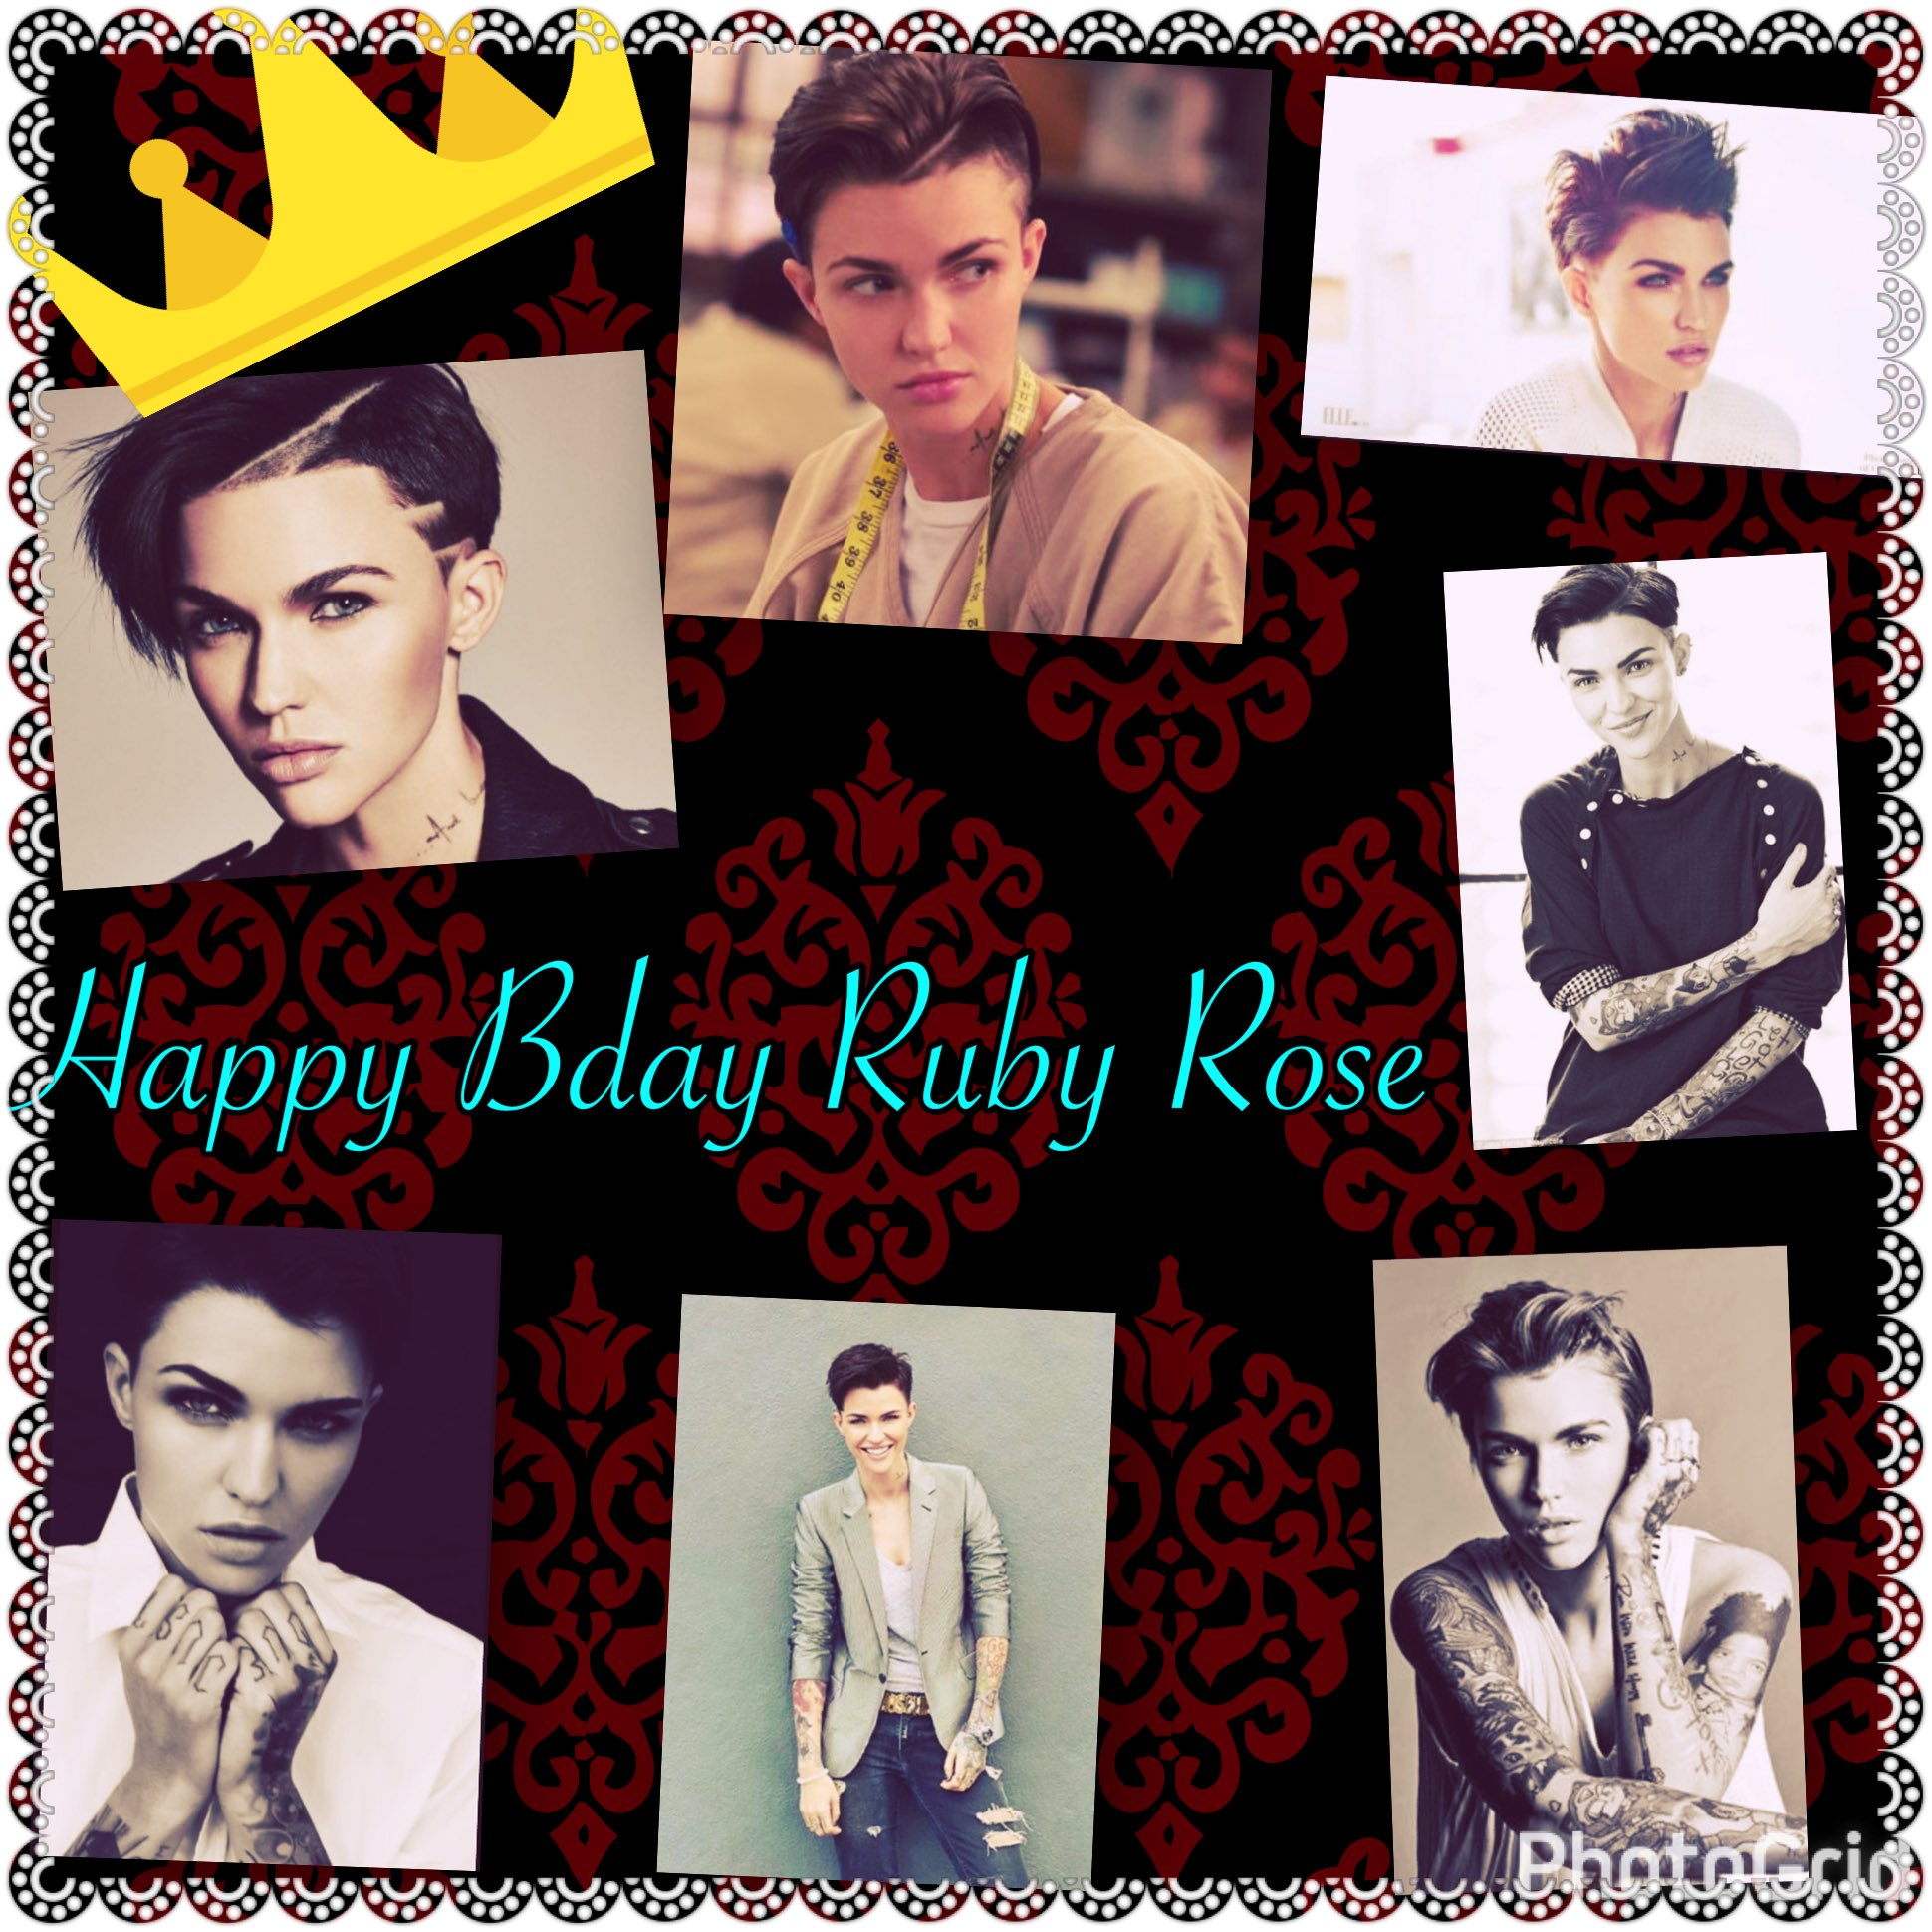 Happy birthday Ruby Rose